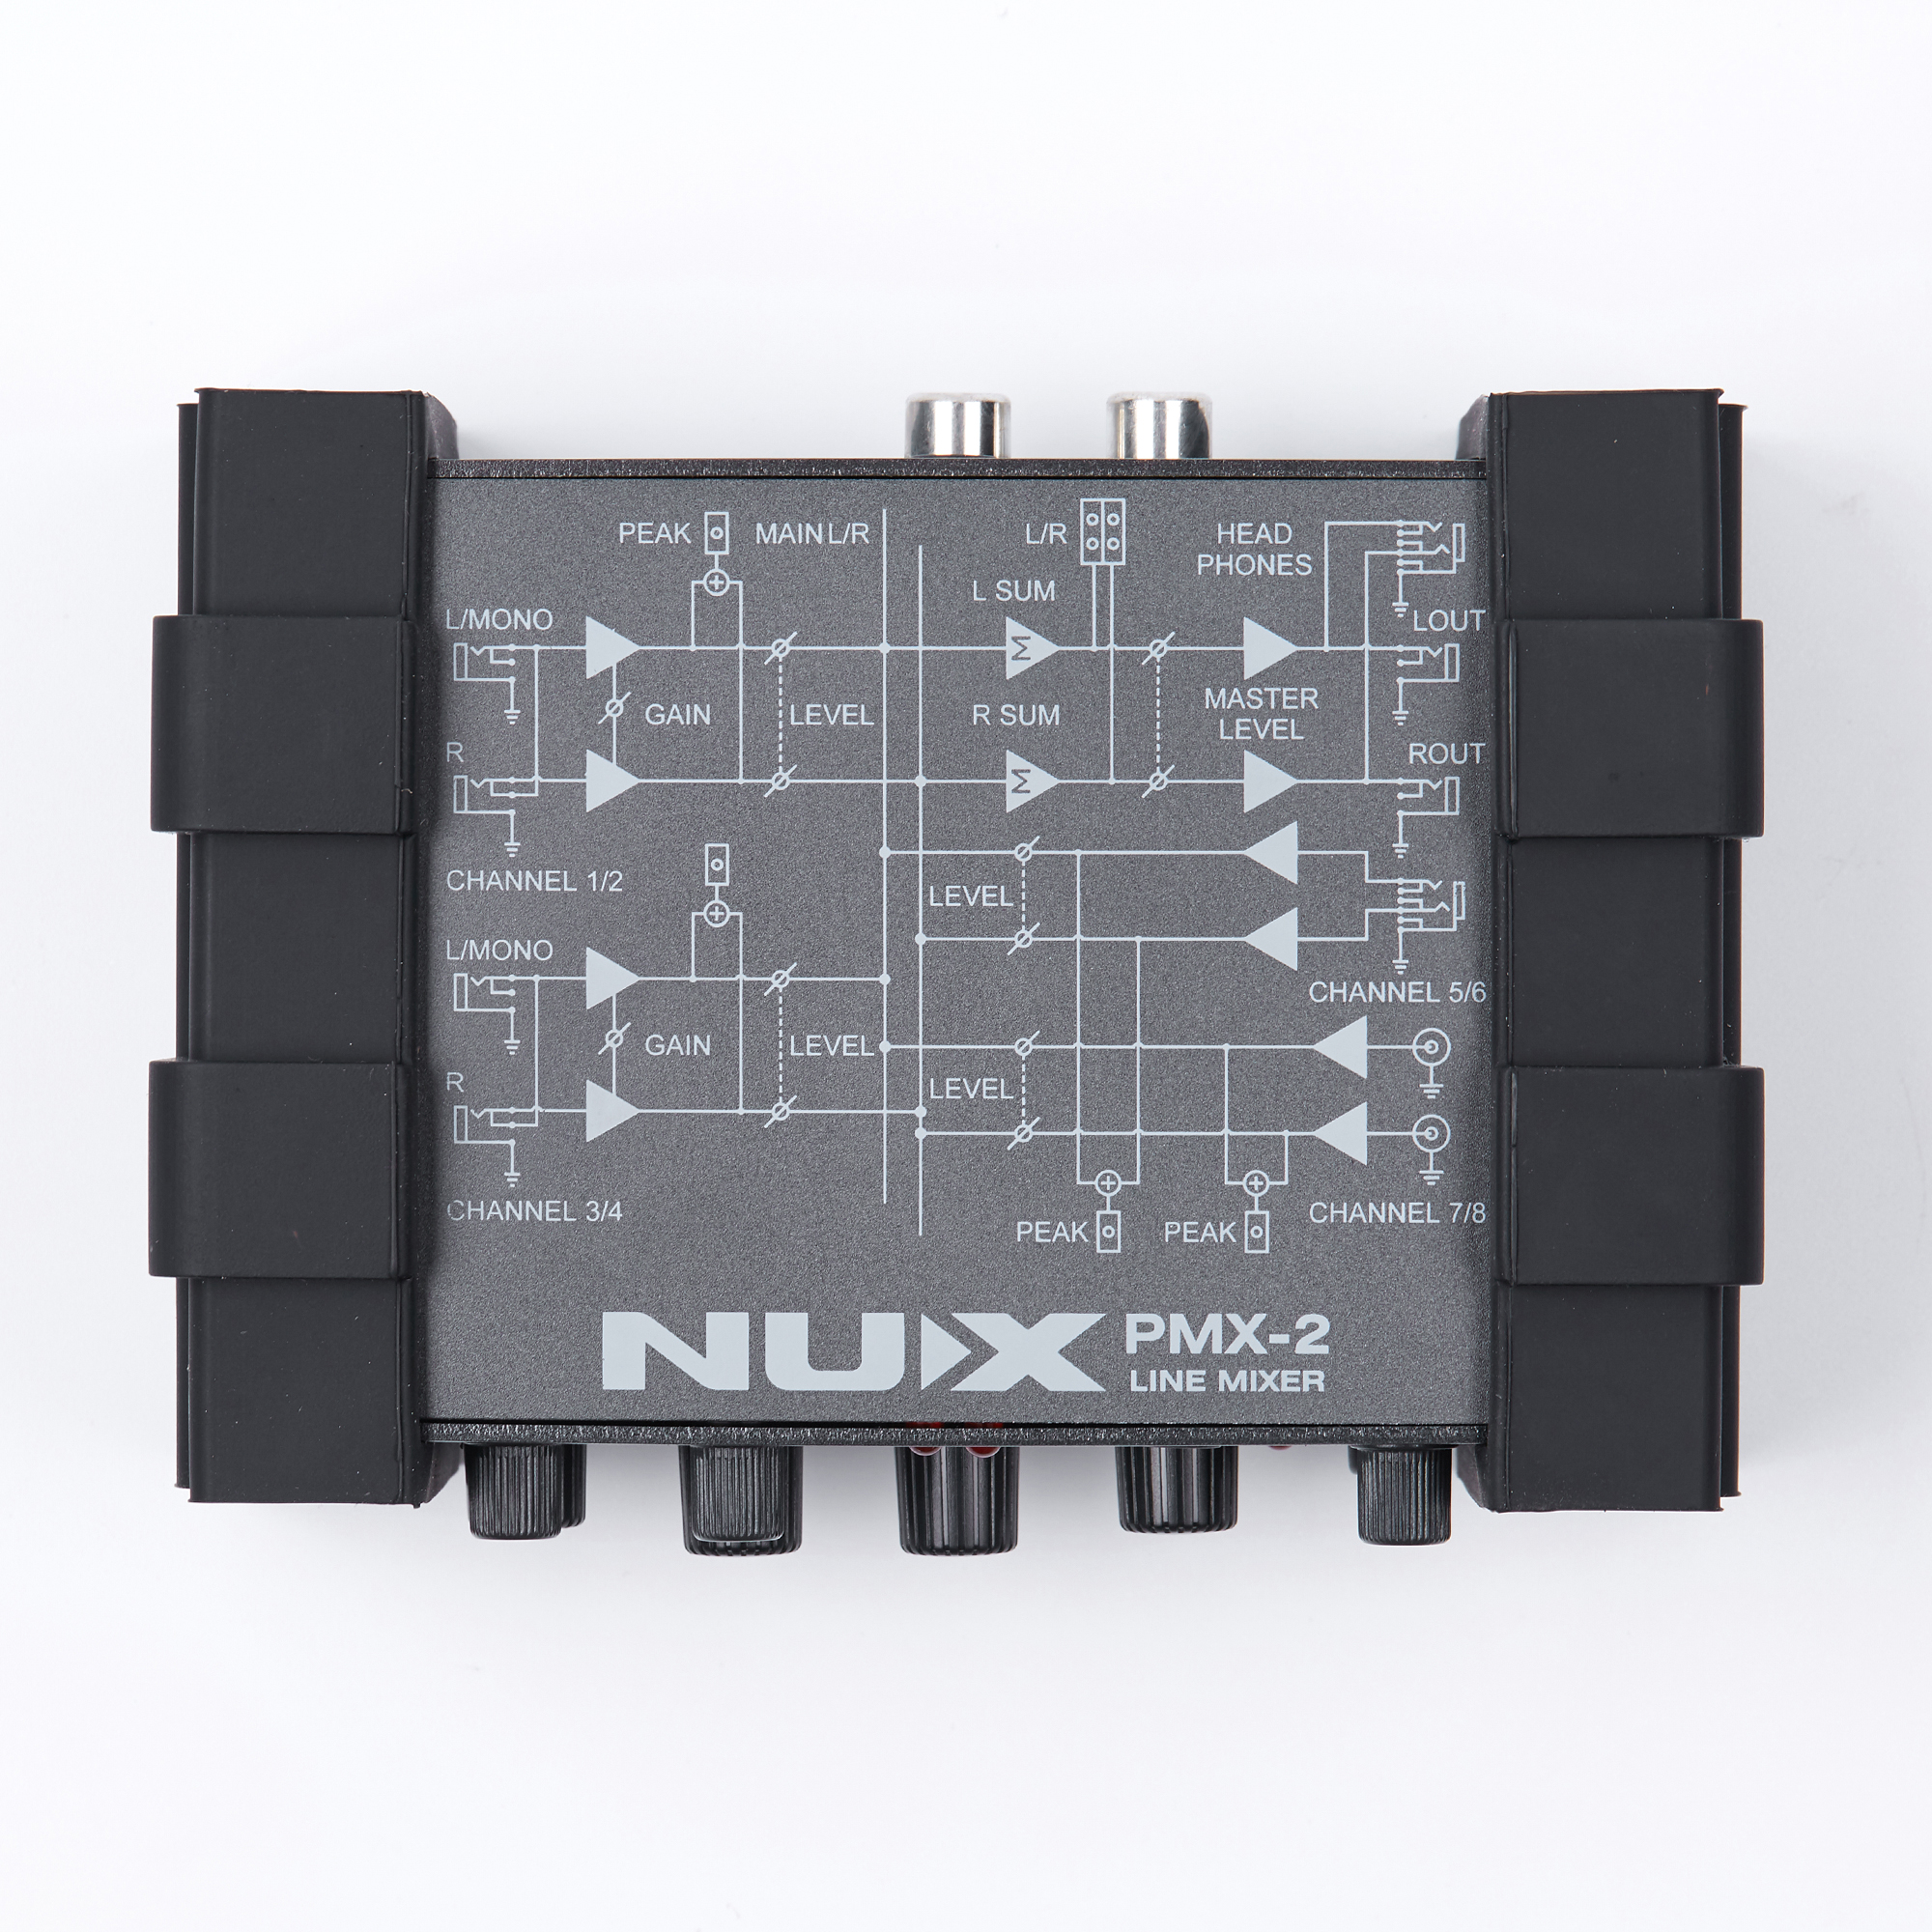 Gain Control 8 Inputs and 2 Outputs NUX PMX-2 Multi-Channel Mini Mixer 30 Musical Instruments Accessories for Guitar Bass Player wenger